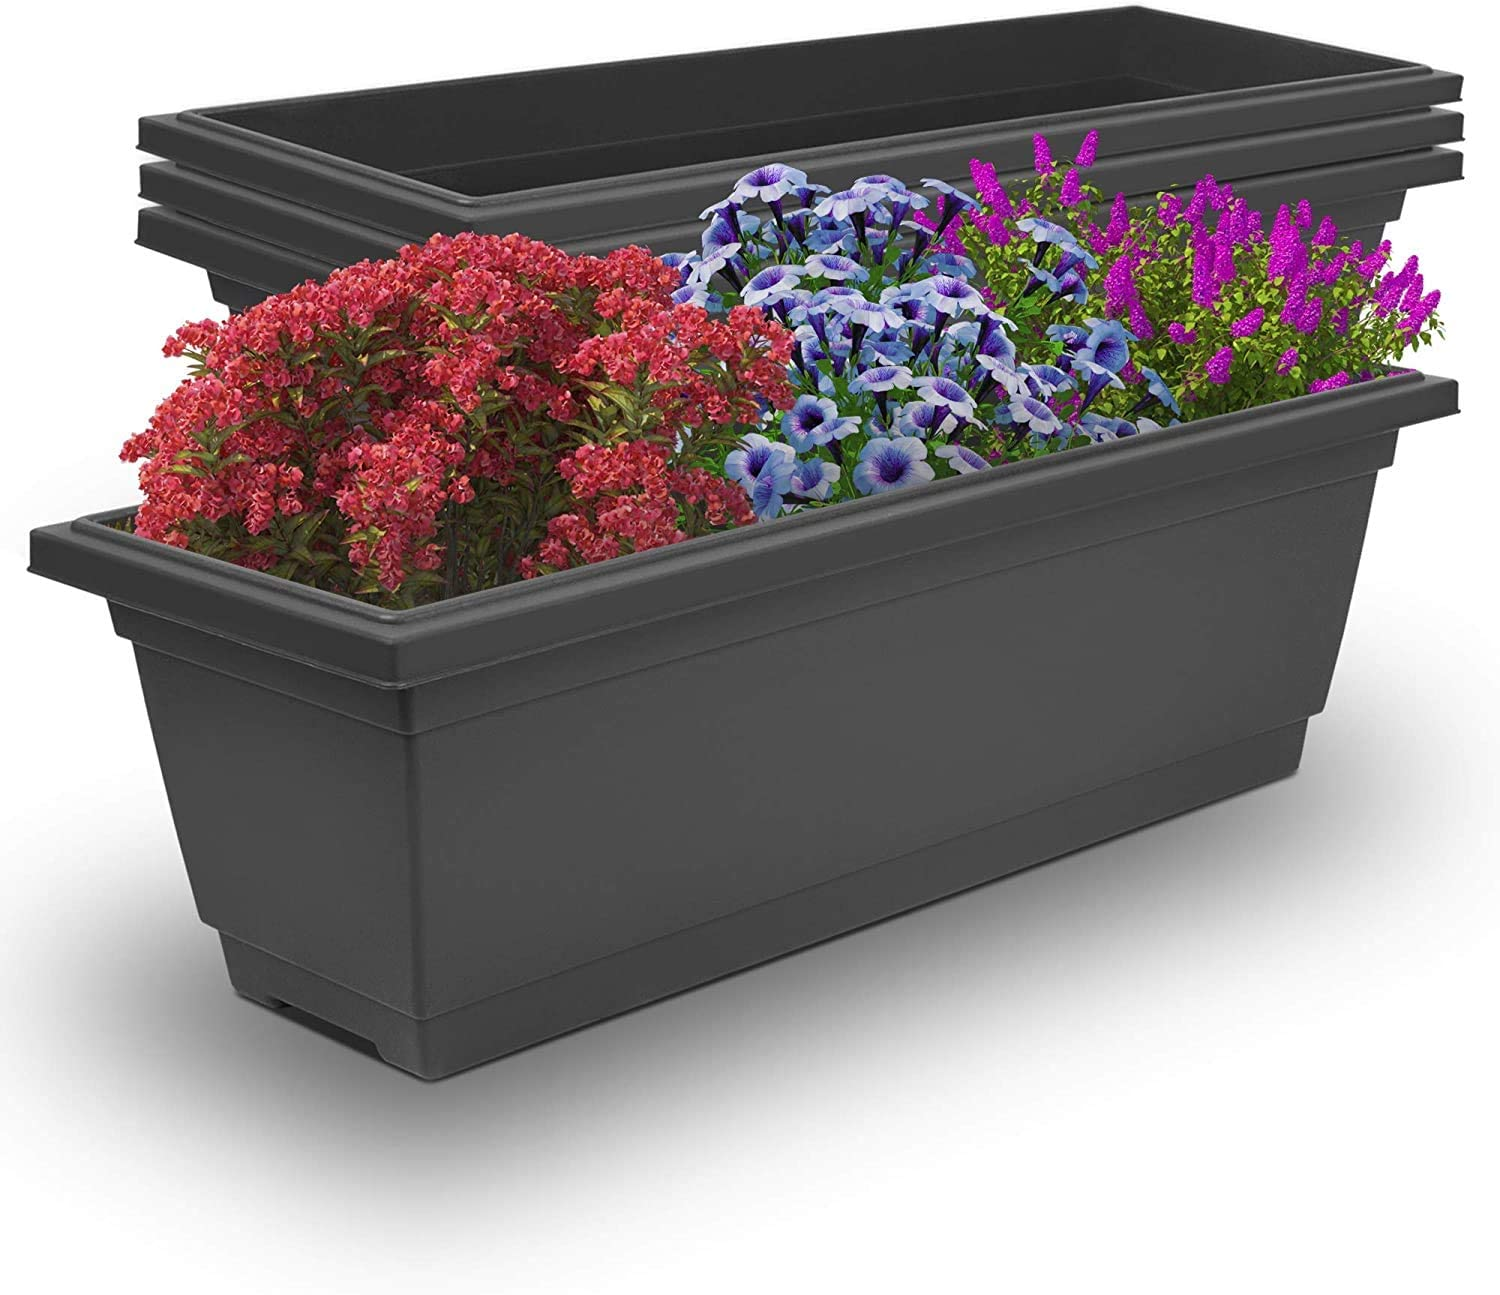 Outland Living Outdoor and Indoor Rectangle Plastic Planter Box Perfect for Herbs Succulents Vegetables and Flower Gardening (Large 4-Pack, Granite Grey)